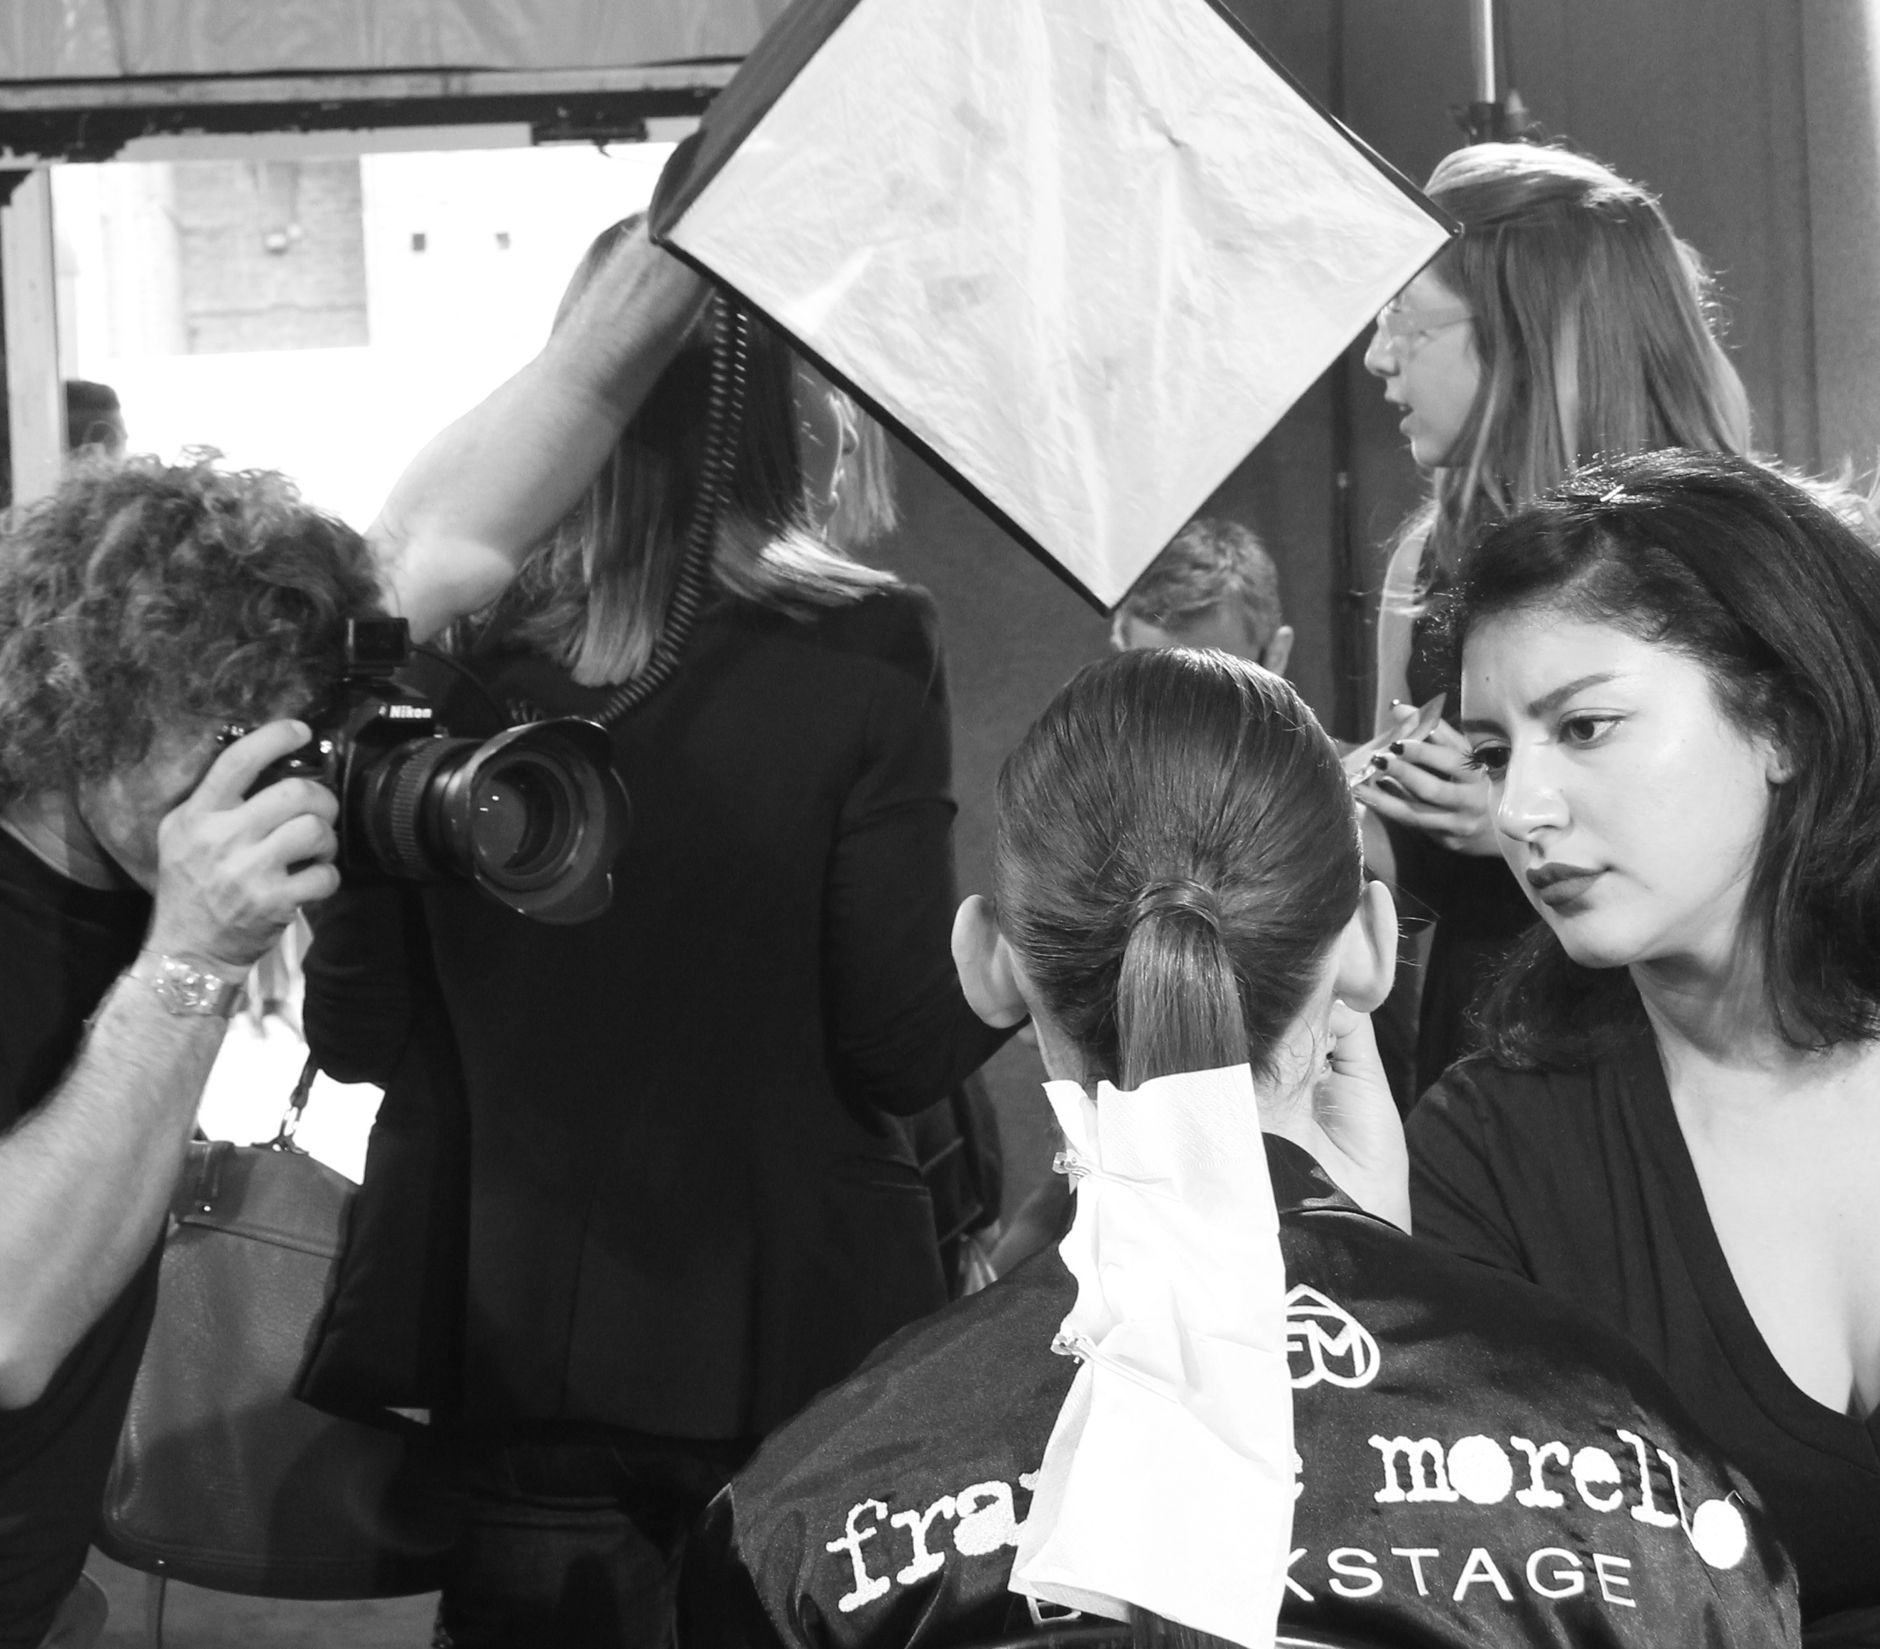 Backstage Fashion Woman